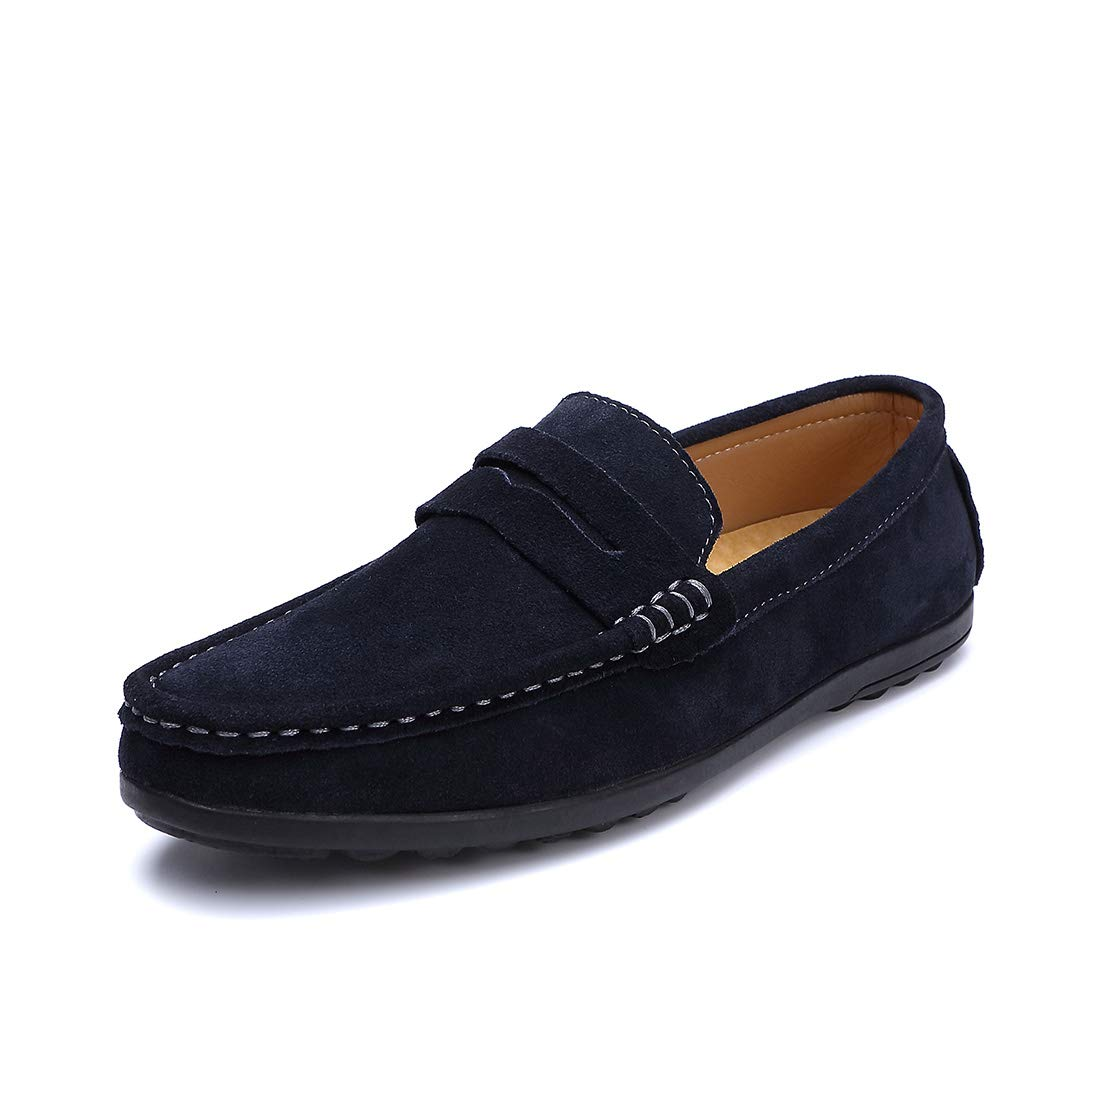 Ruiatoo Men's Penny Loafers Slip On Driving Boat Shoes Moccasins Footwear Suede Leather Flat Dress Shoes Blue 42